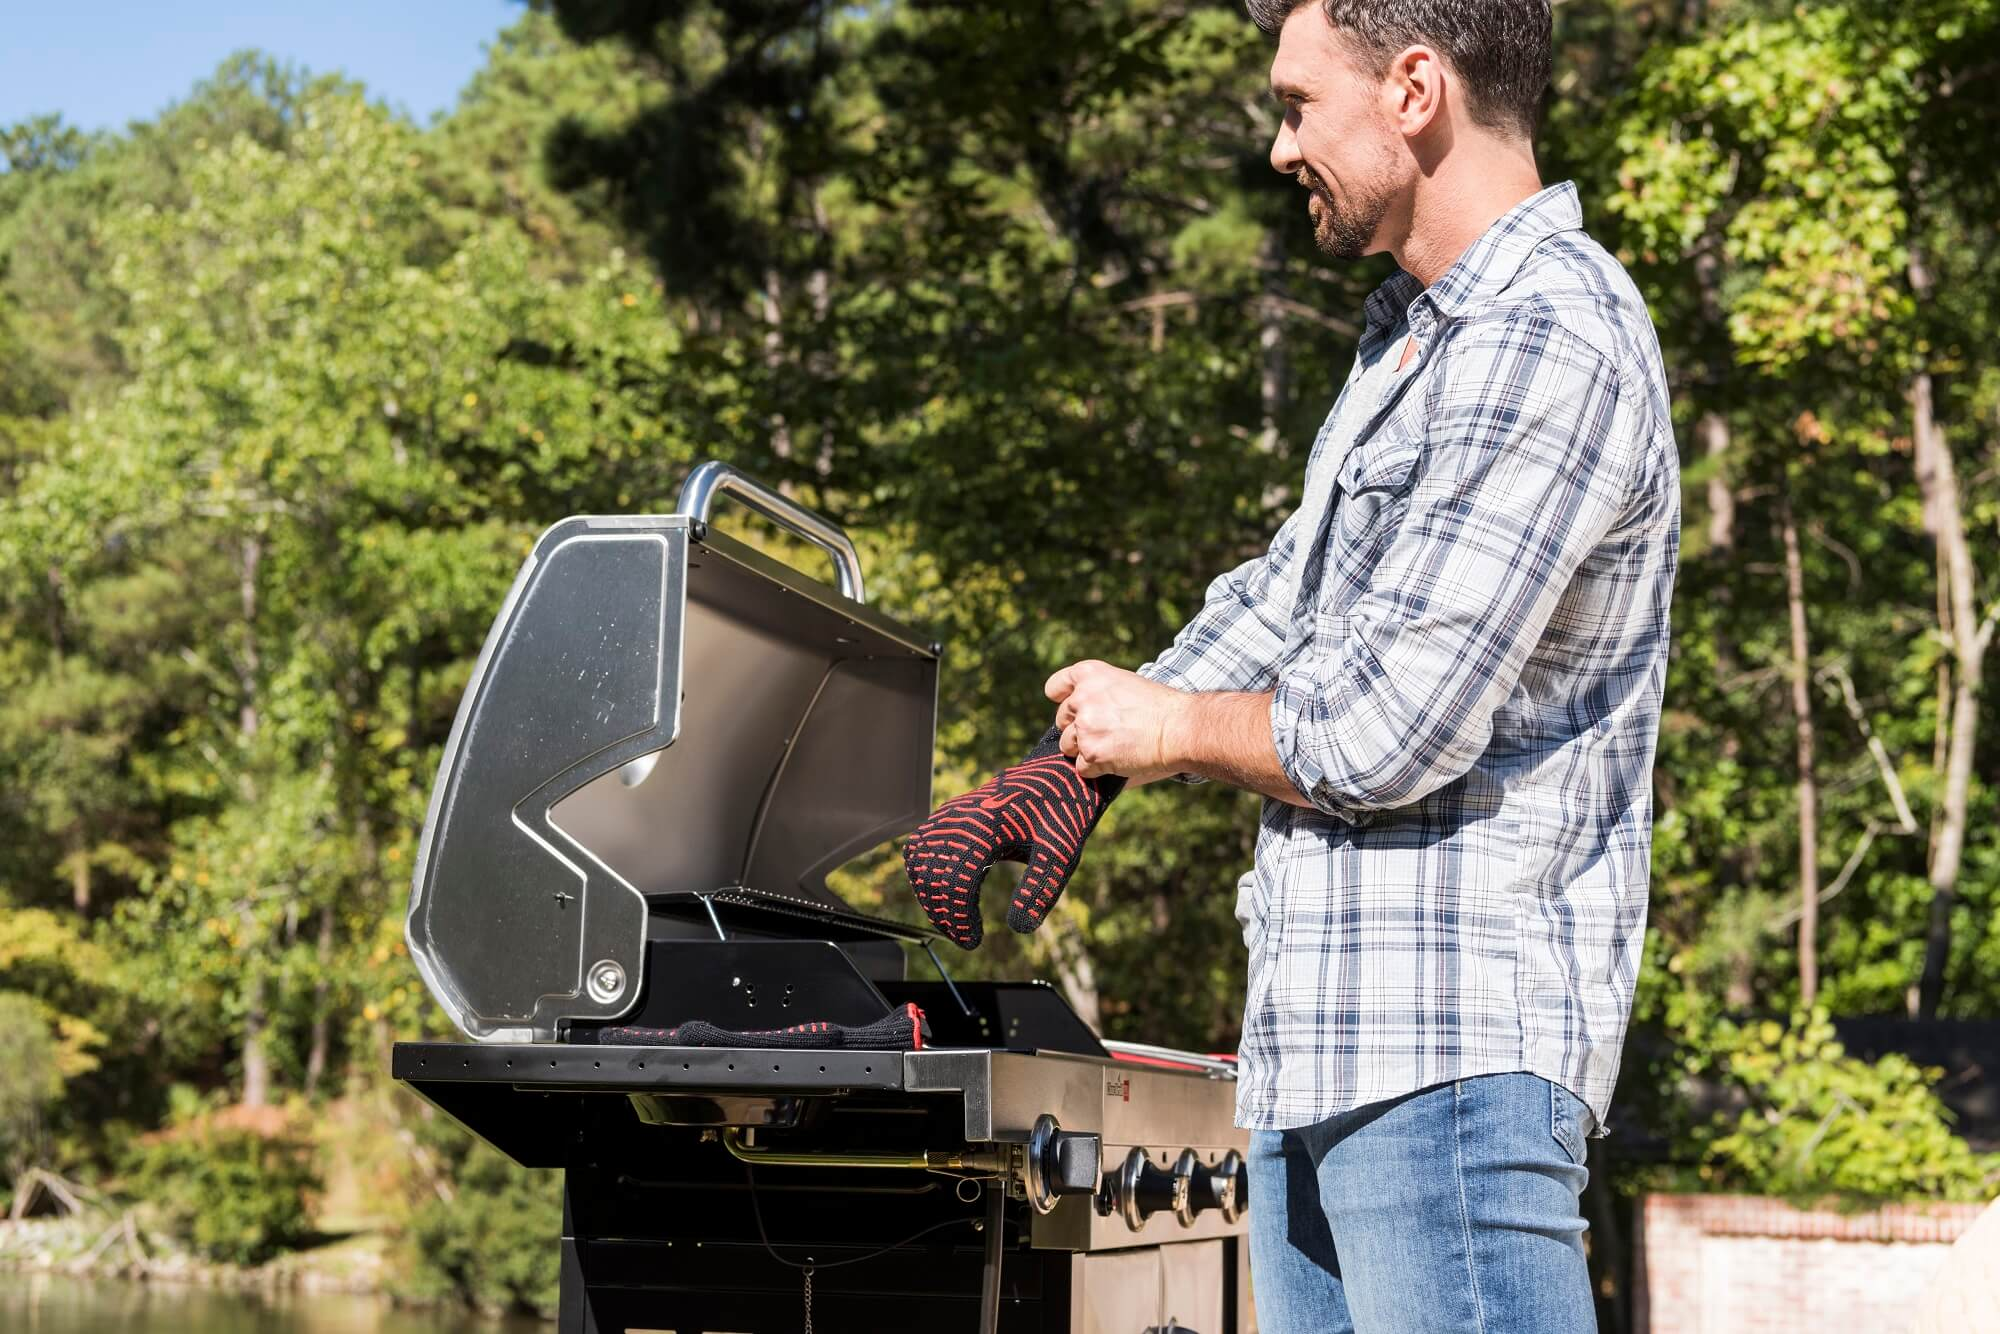 The gas grill makes sounds